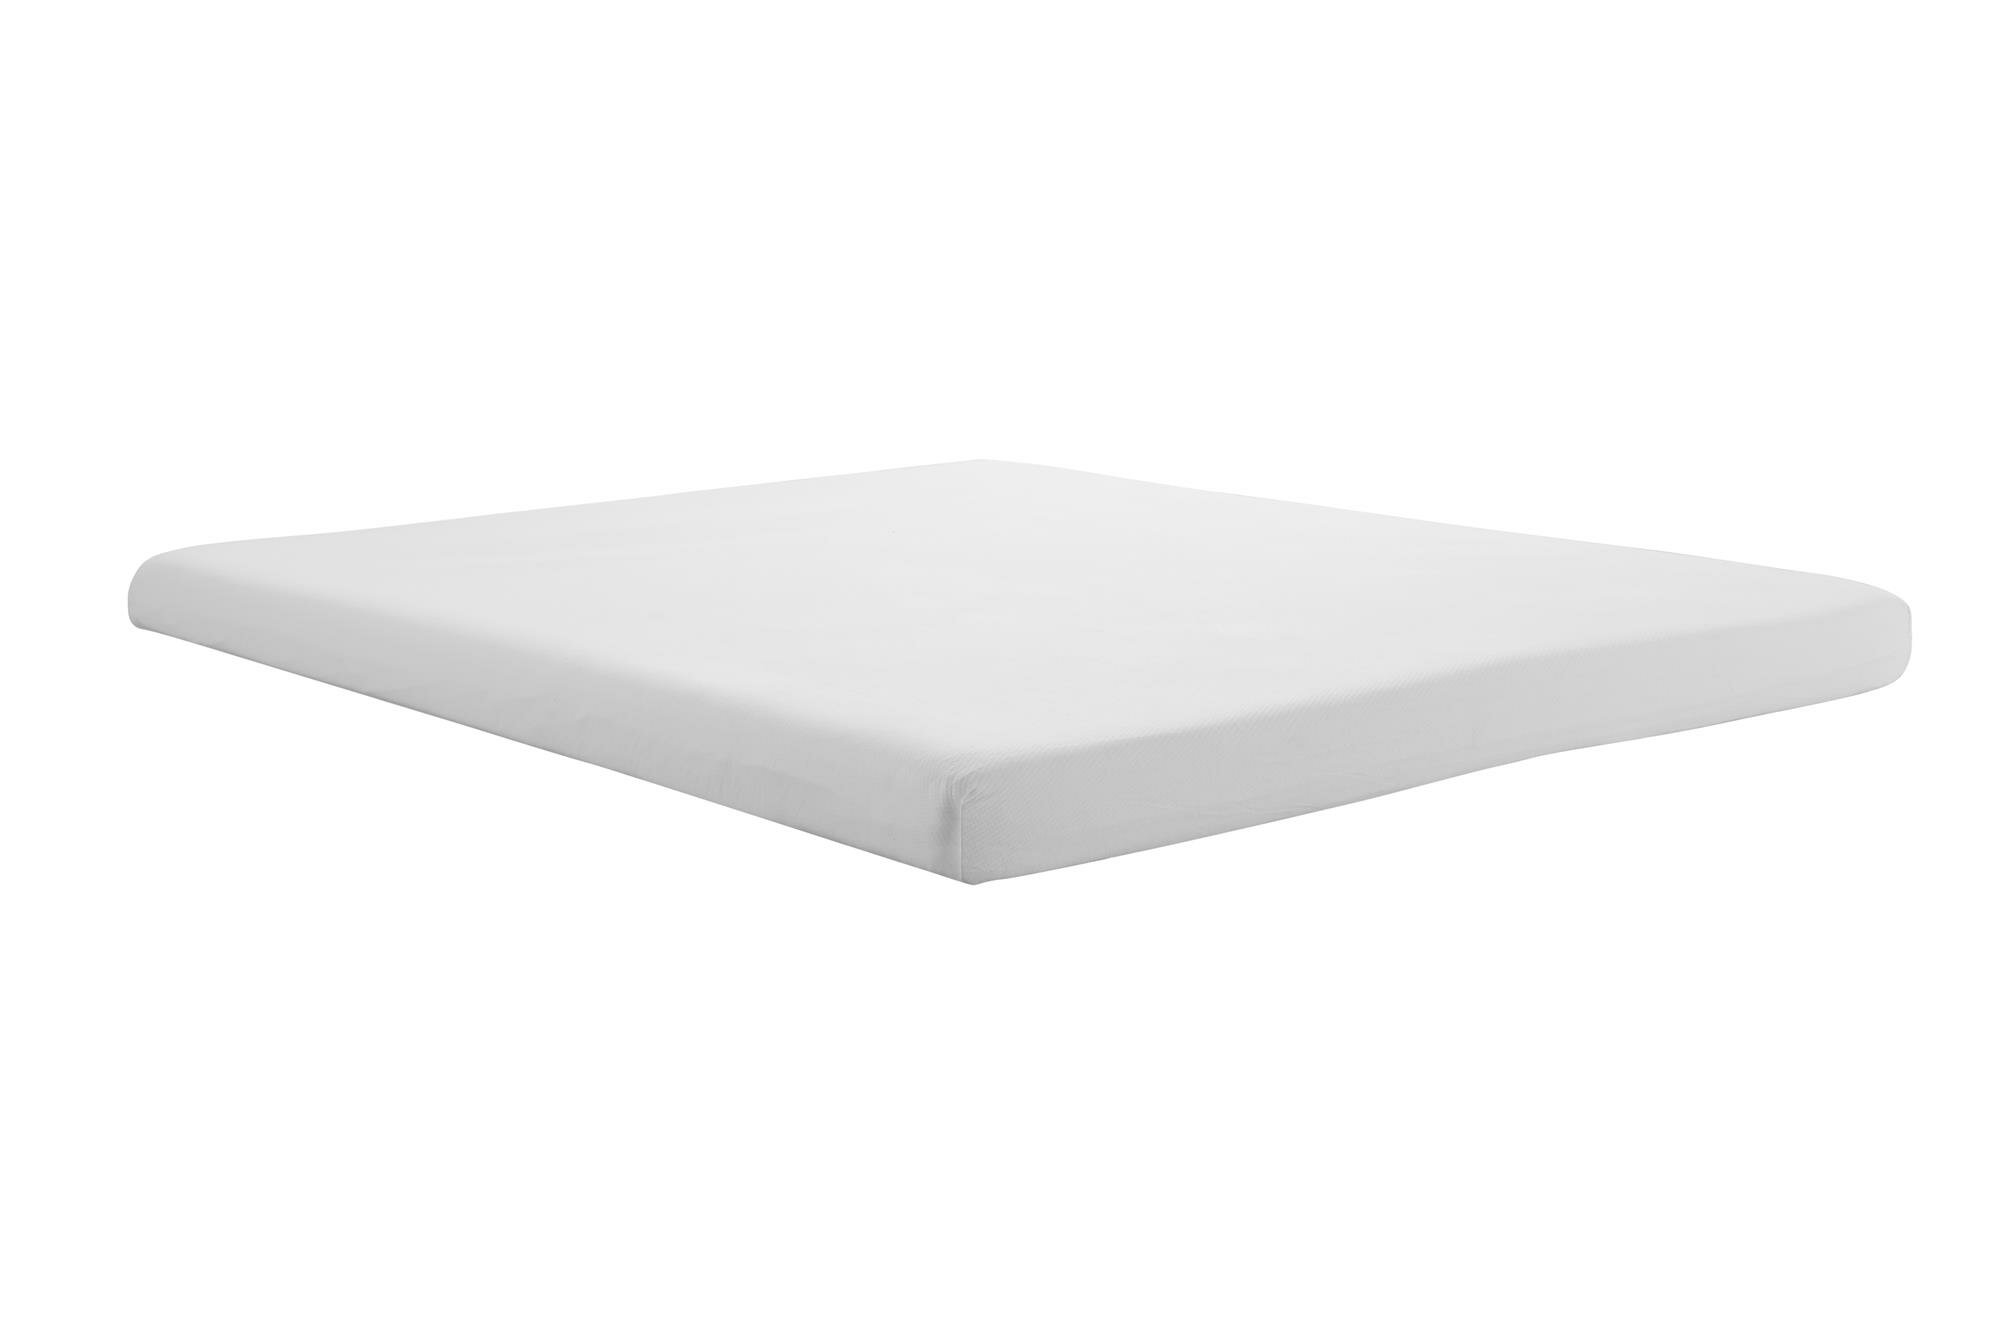 Signature sleep certipur us sofa bed replacement mattress for Sofa bed mattress replacement